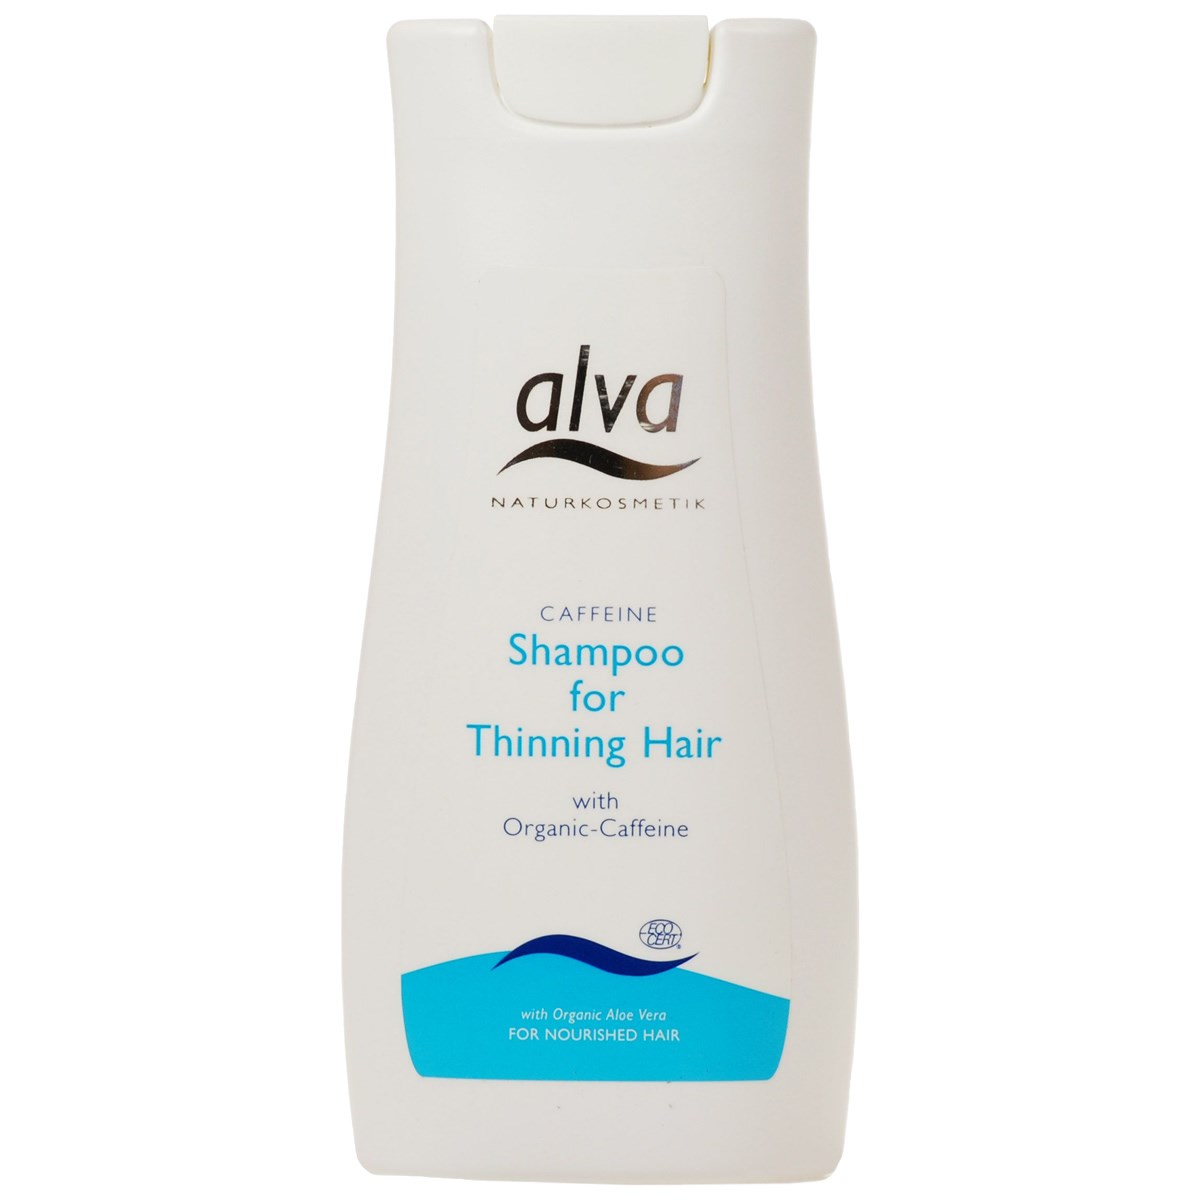 Alva Caffeine Shampoo Thinning Hair